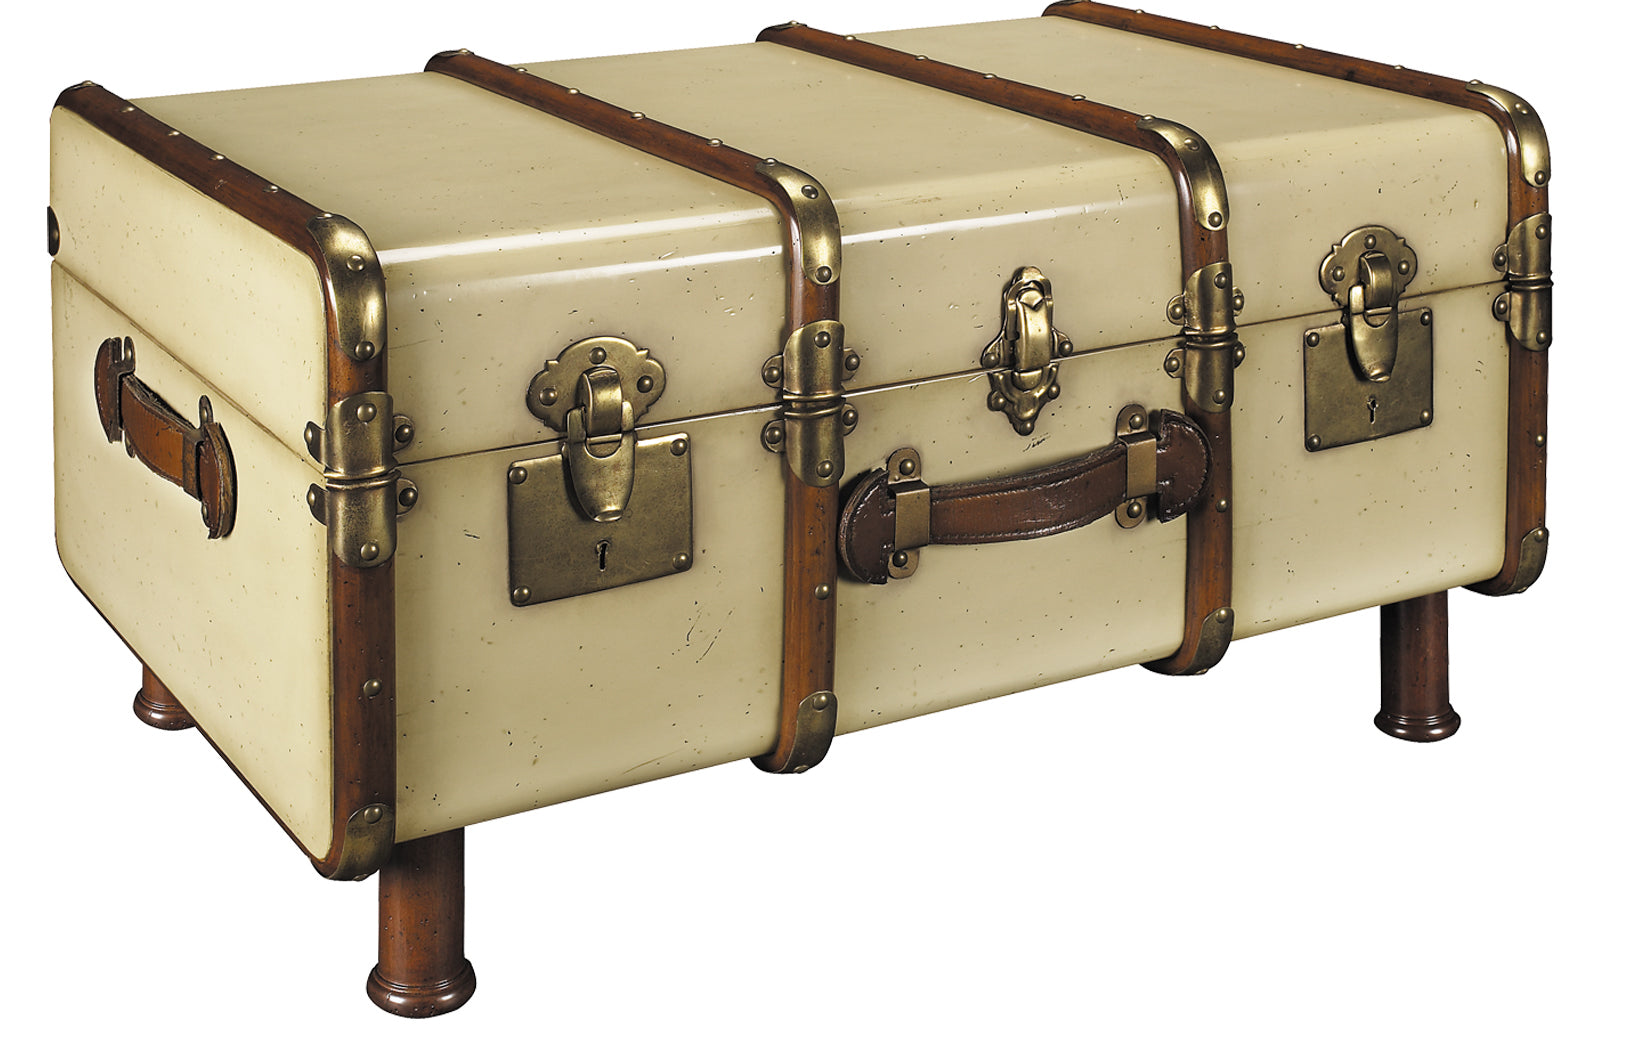 Ivory Wooden Captains Storage Trunk With Legs And Brass Bumpers